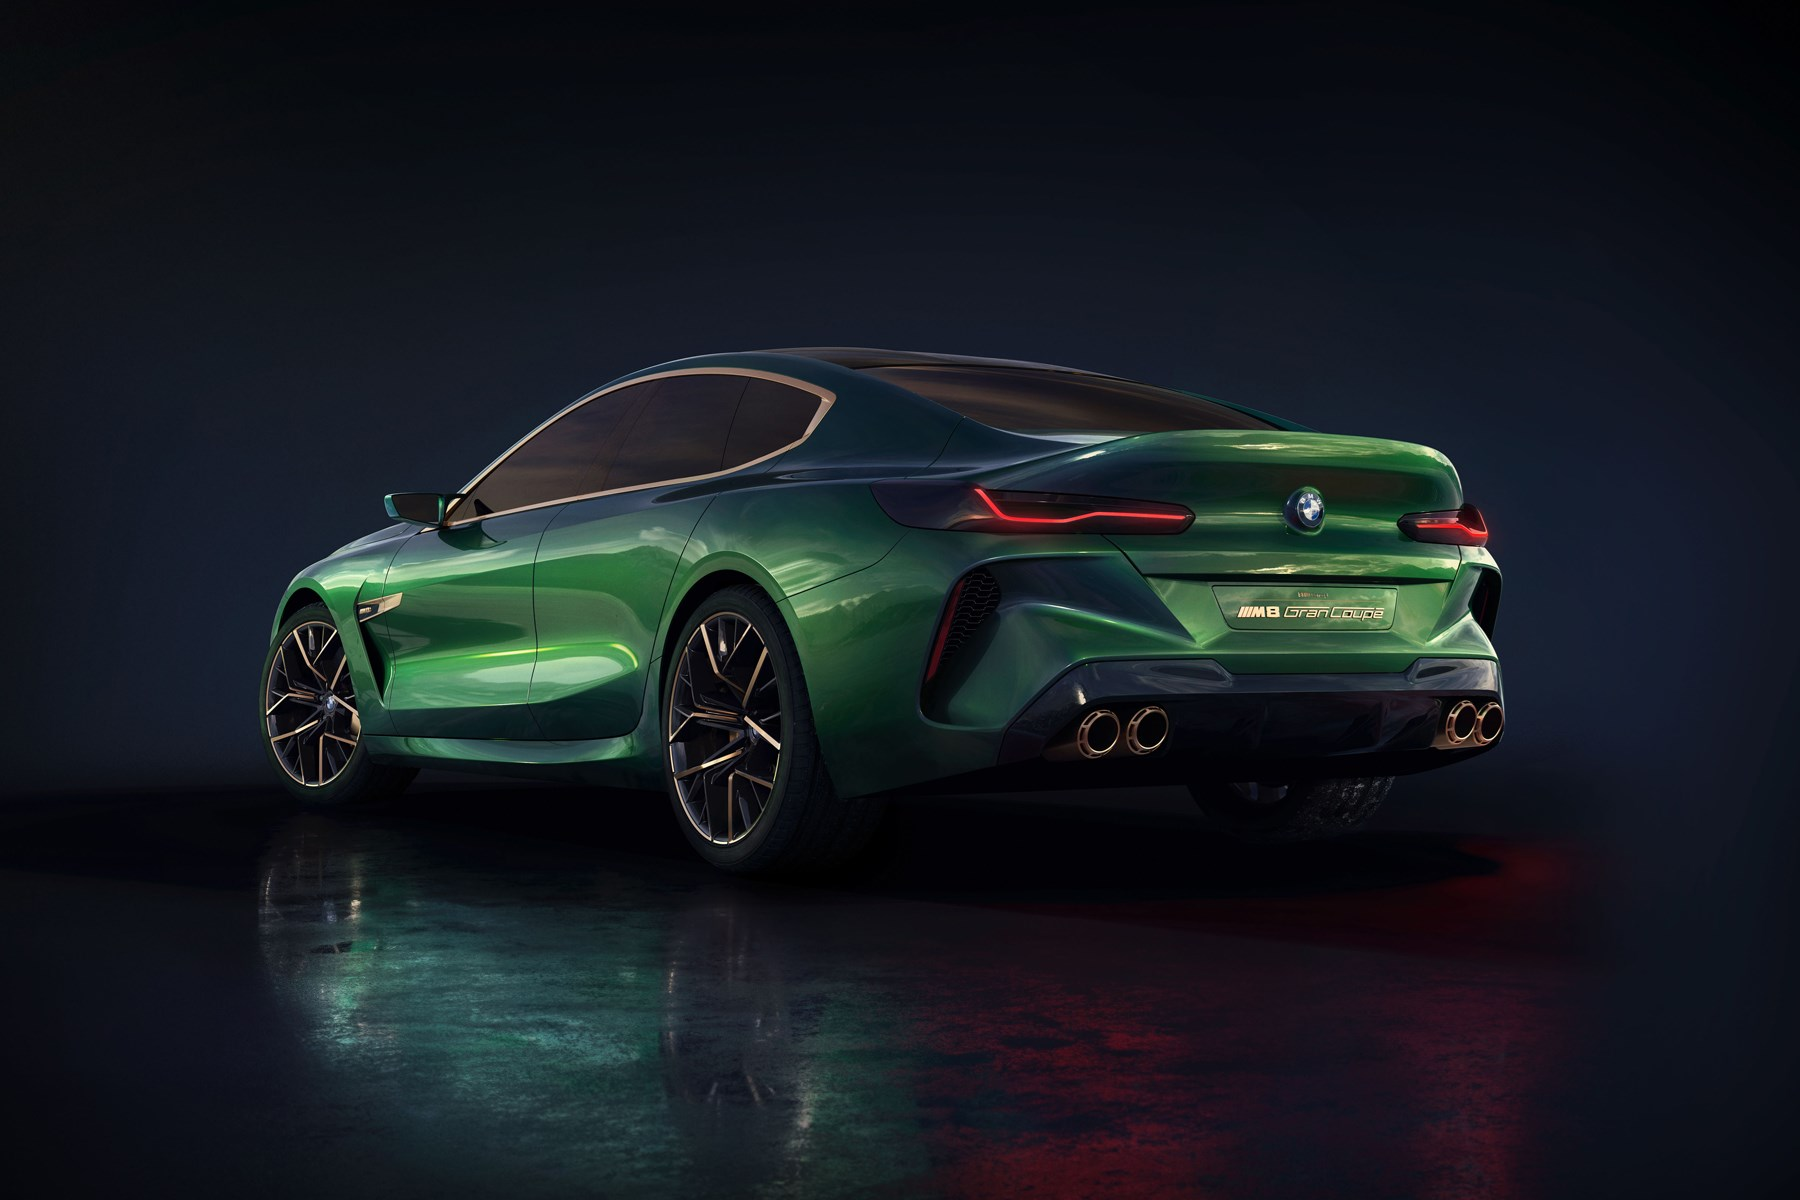 It's official: the new BMW concept M8 Gran Coupe | CAR ...